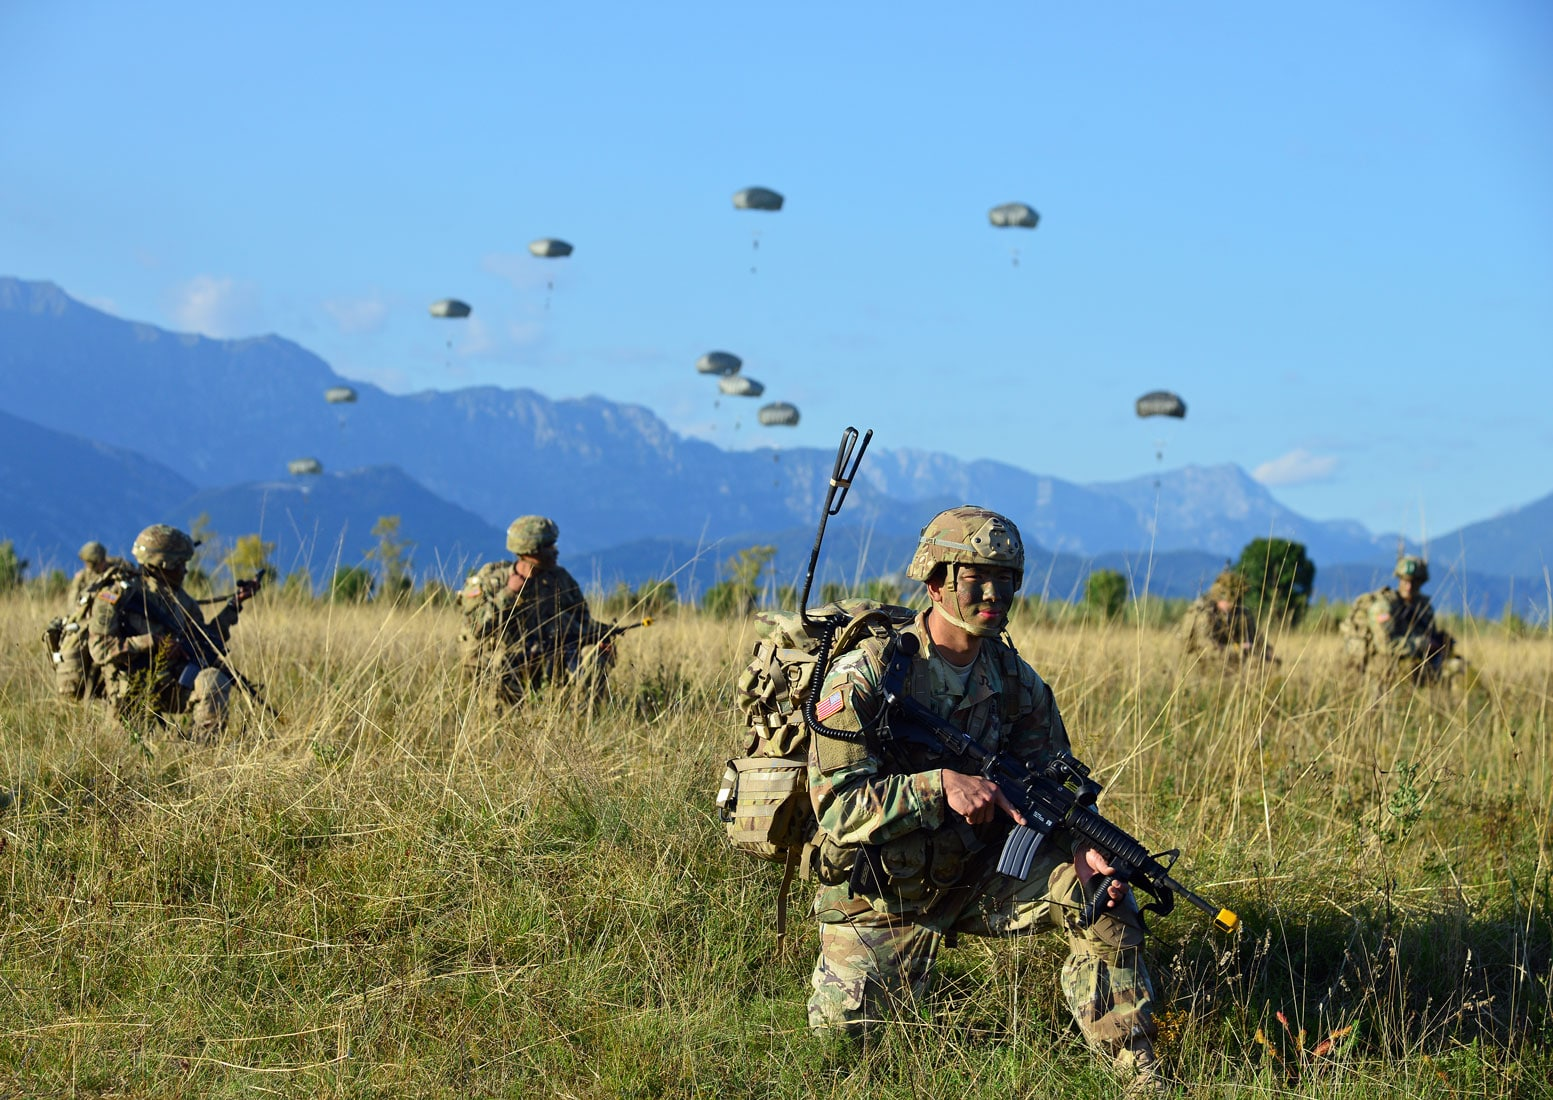 US Army Paratroopers assigned to the Brigade Support Battalion, 173rd Airborne Brigade, provide security after an airborne operation.